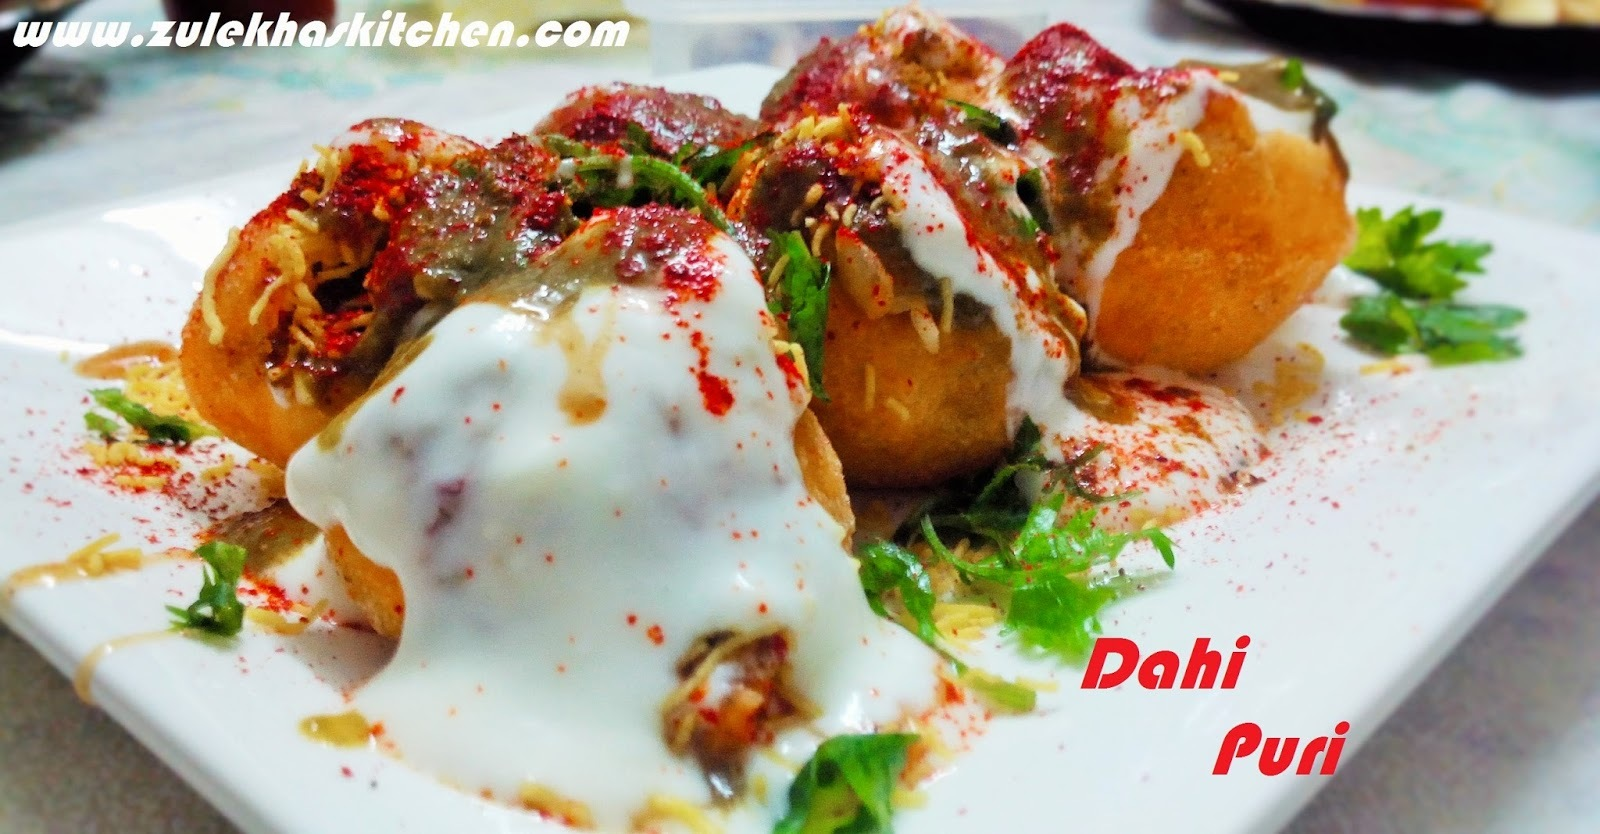 Recipe of Dahi Batata Puri